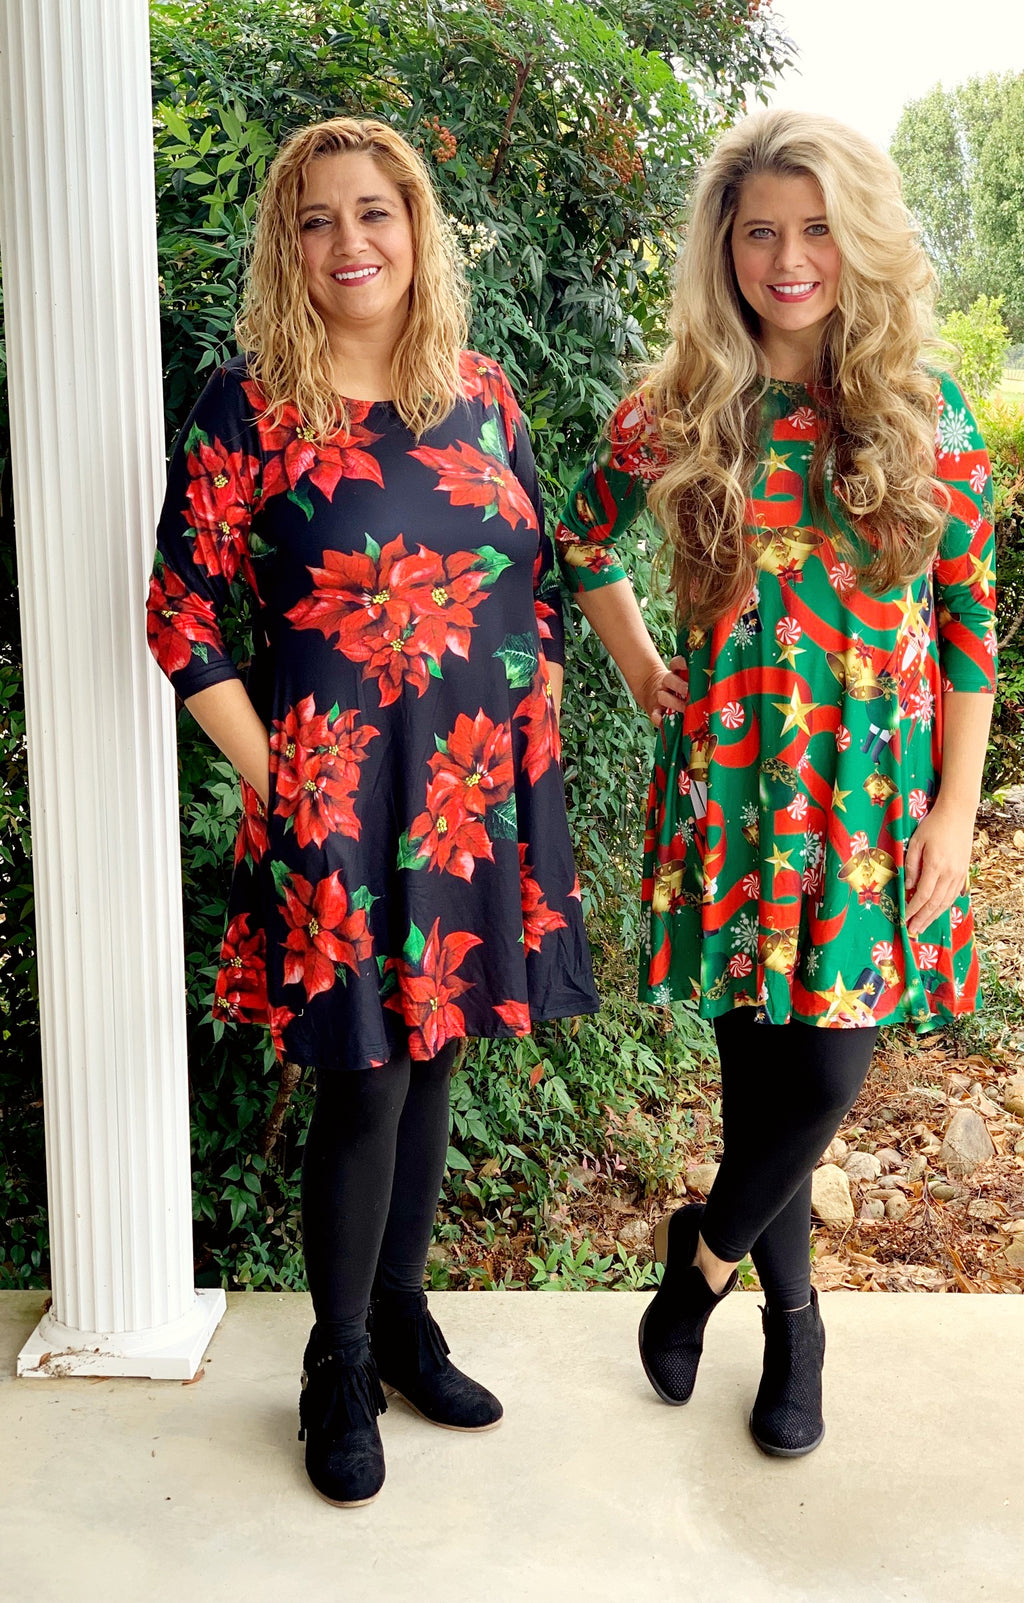 Poinsettia Dress (first one pictured)